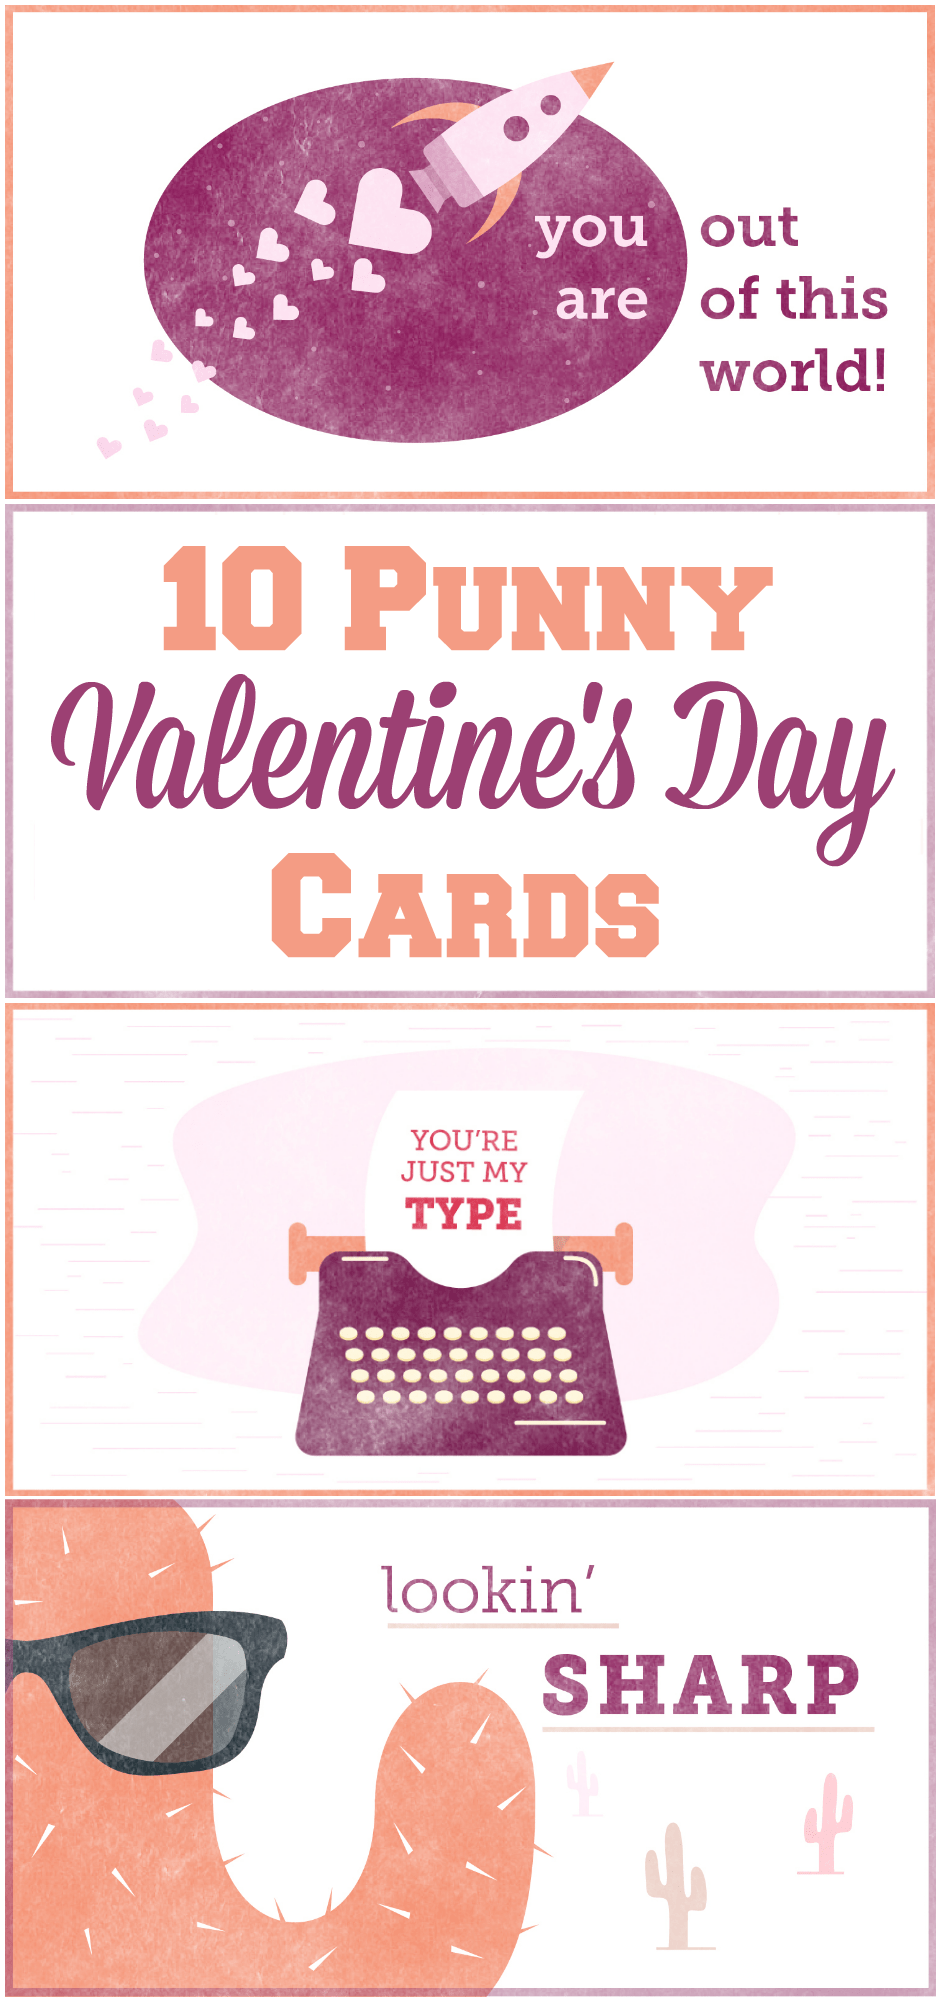 photograph about Valentines Cards Printable known as 10 No cost Punny Valentines Working day Playing cards Printables - The